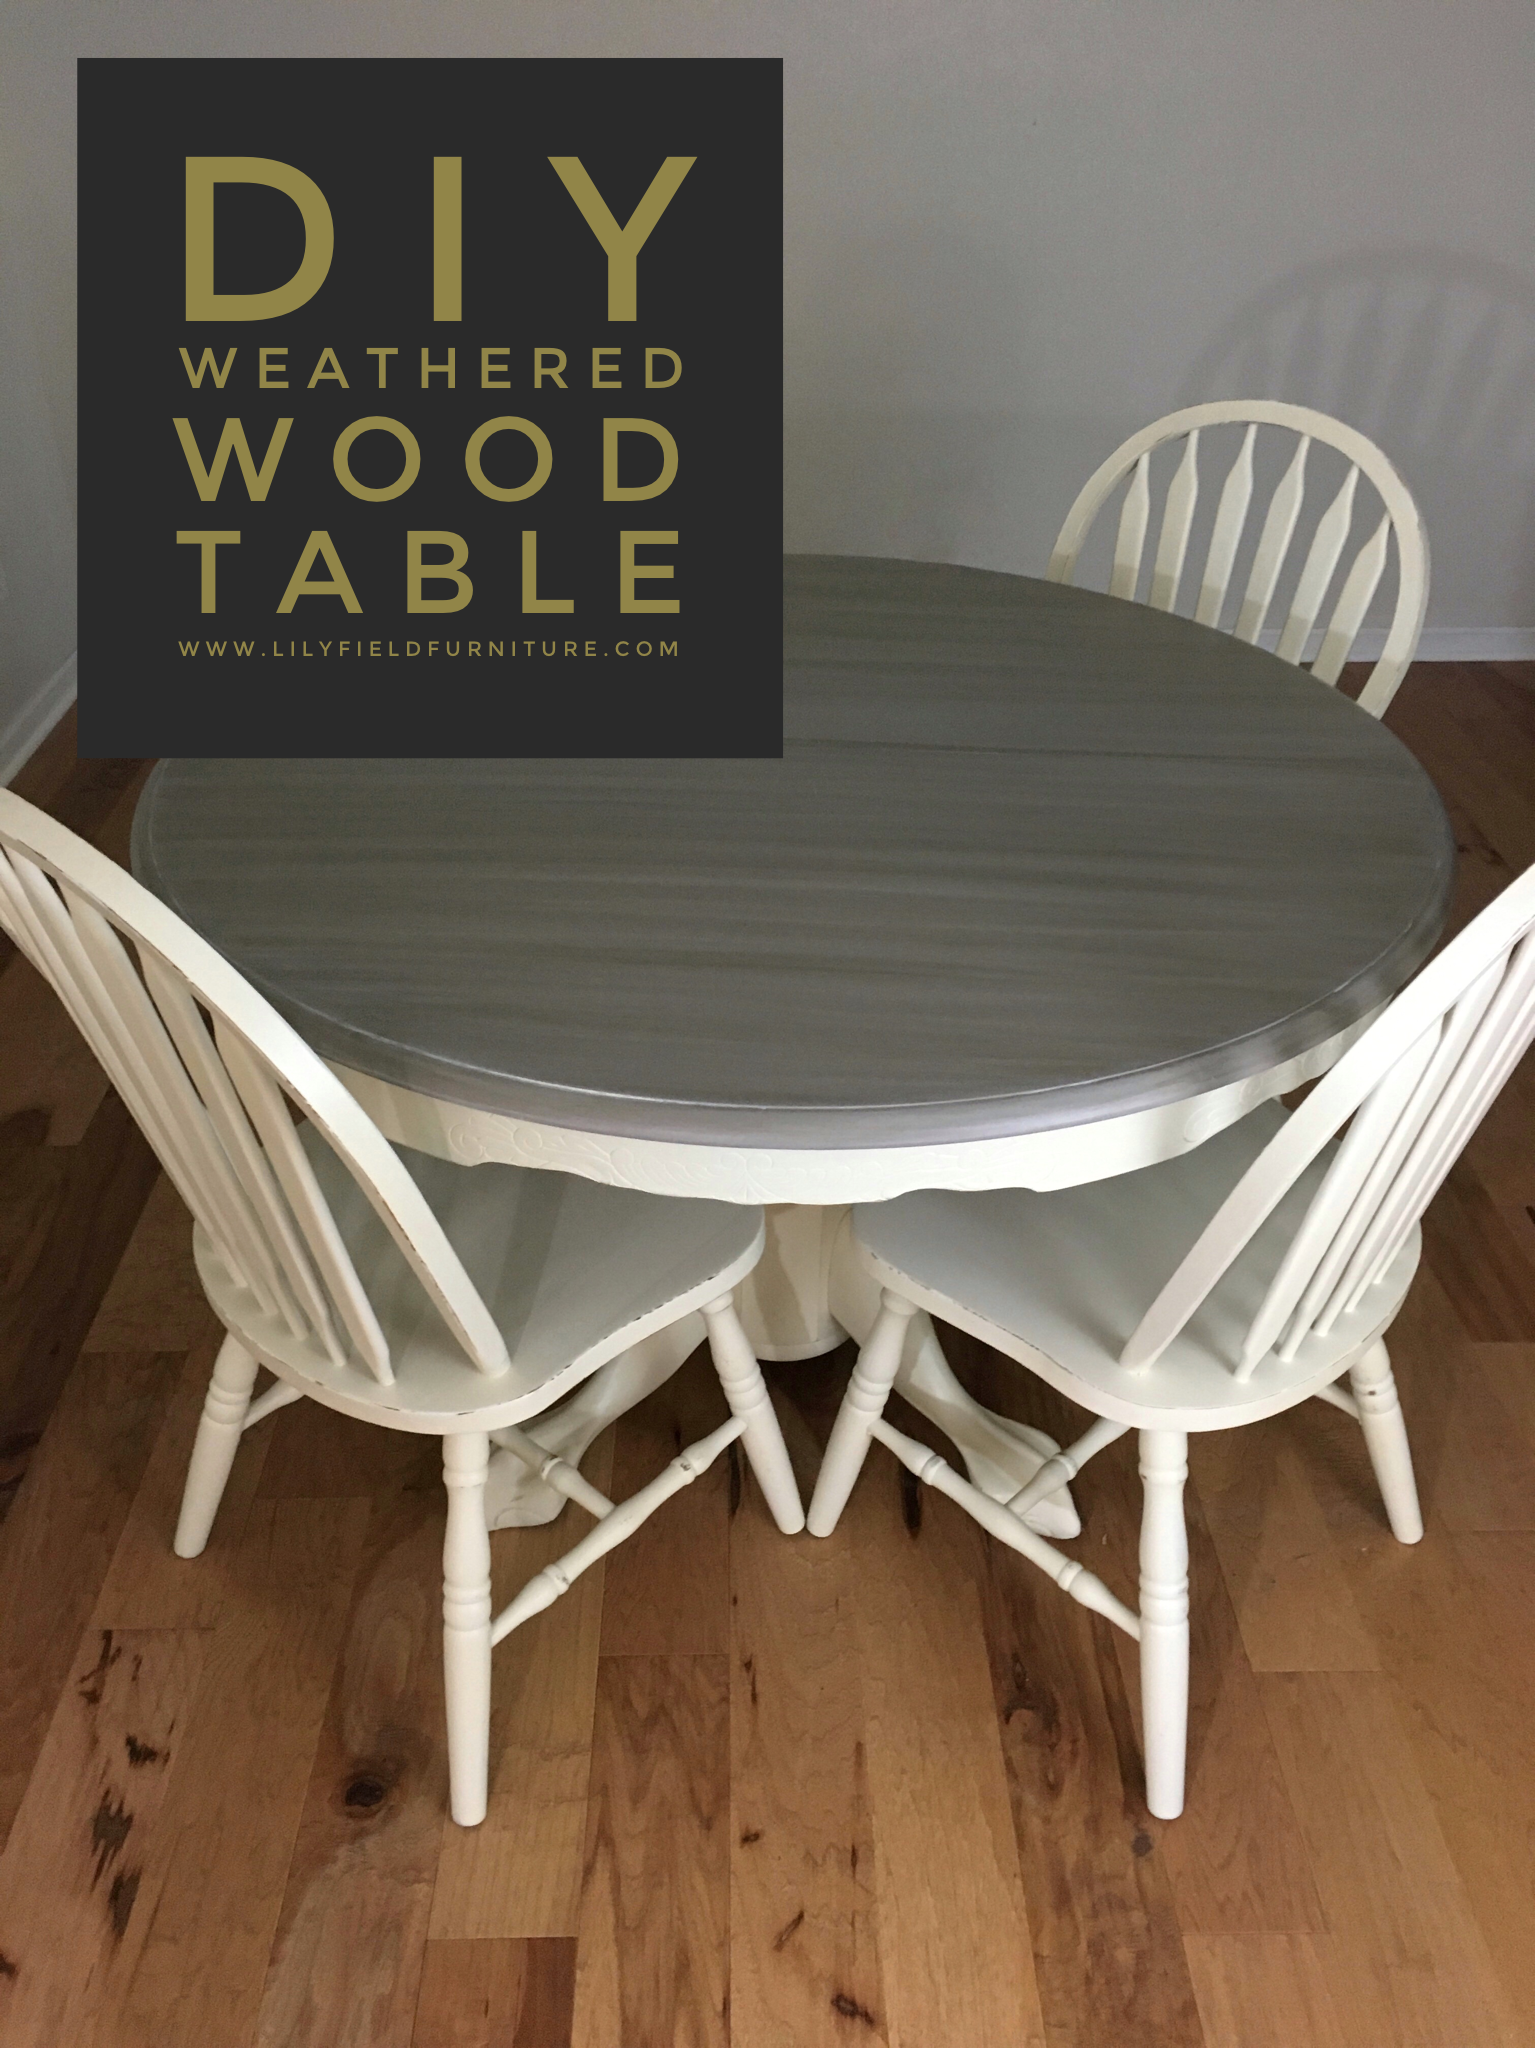 DIY Weathered Wood Table  Restoration Hardware Style. DIY Weathered Wood Table   Plus a  250 Giveaway     Lily Field Co